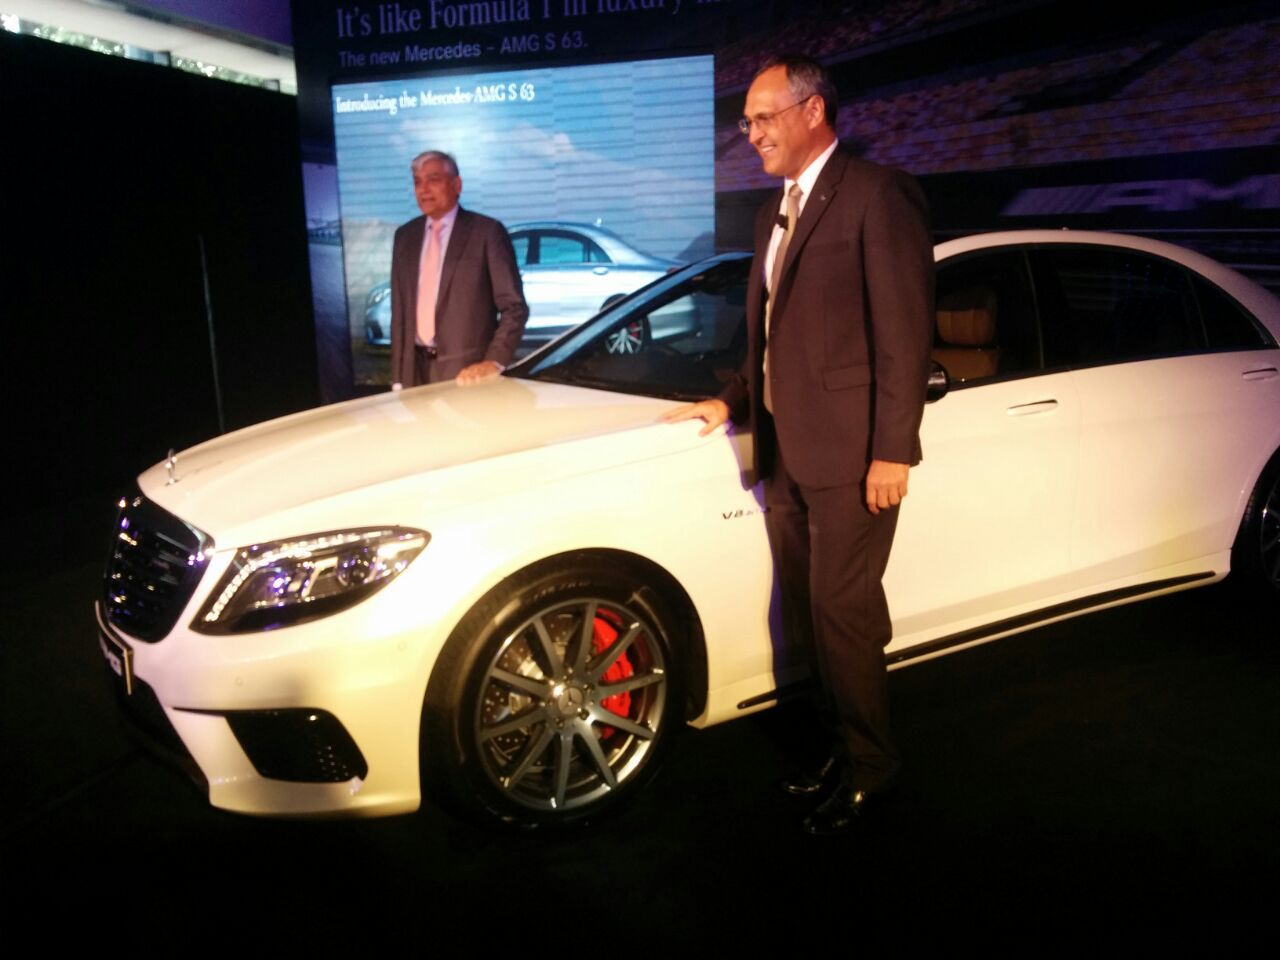 Mercedes launch